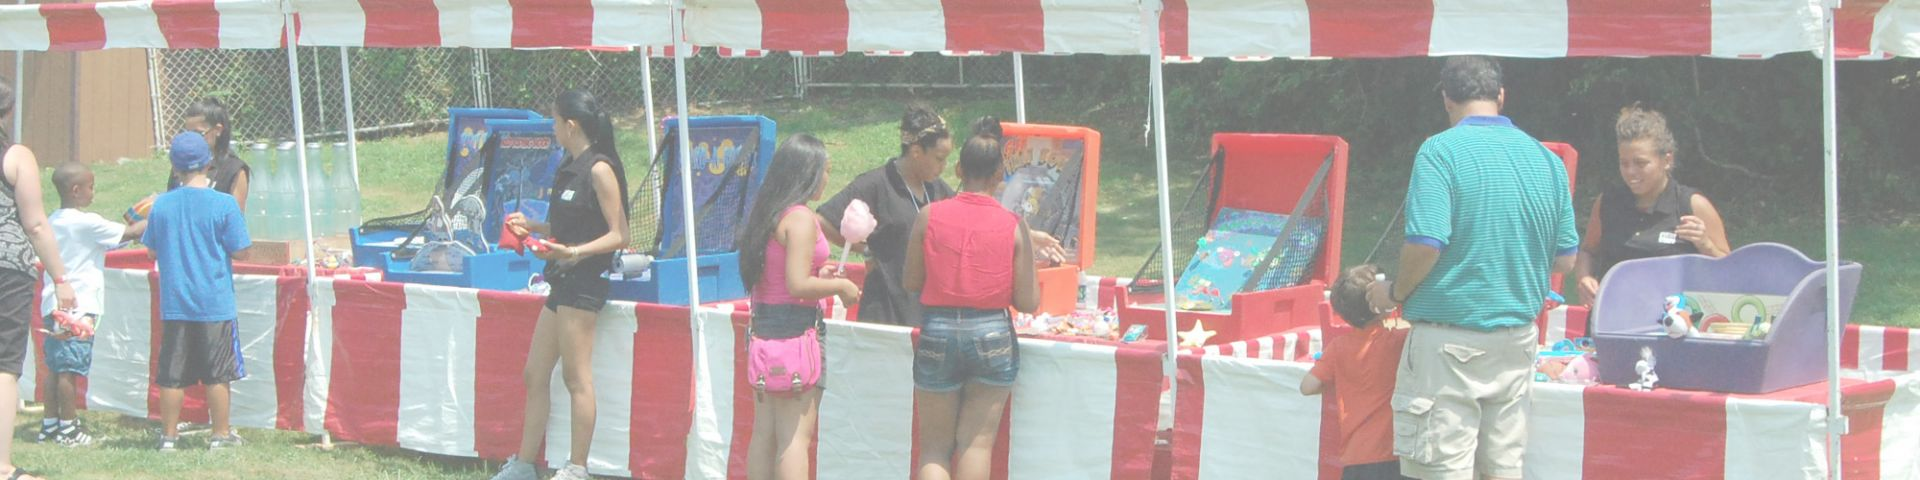 Carnival Games and Rentals